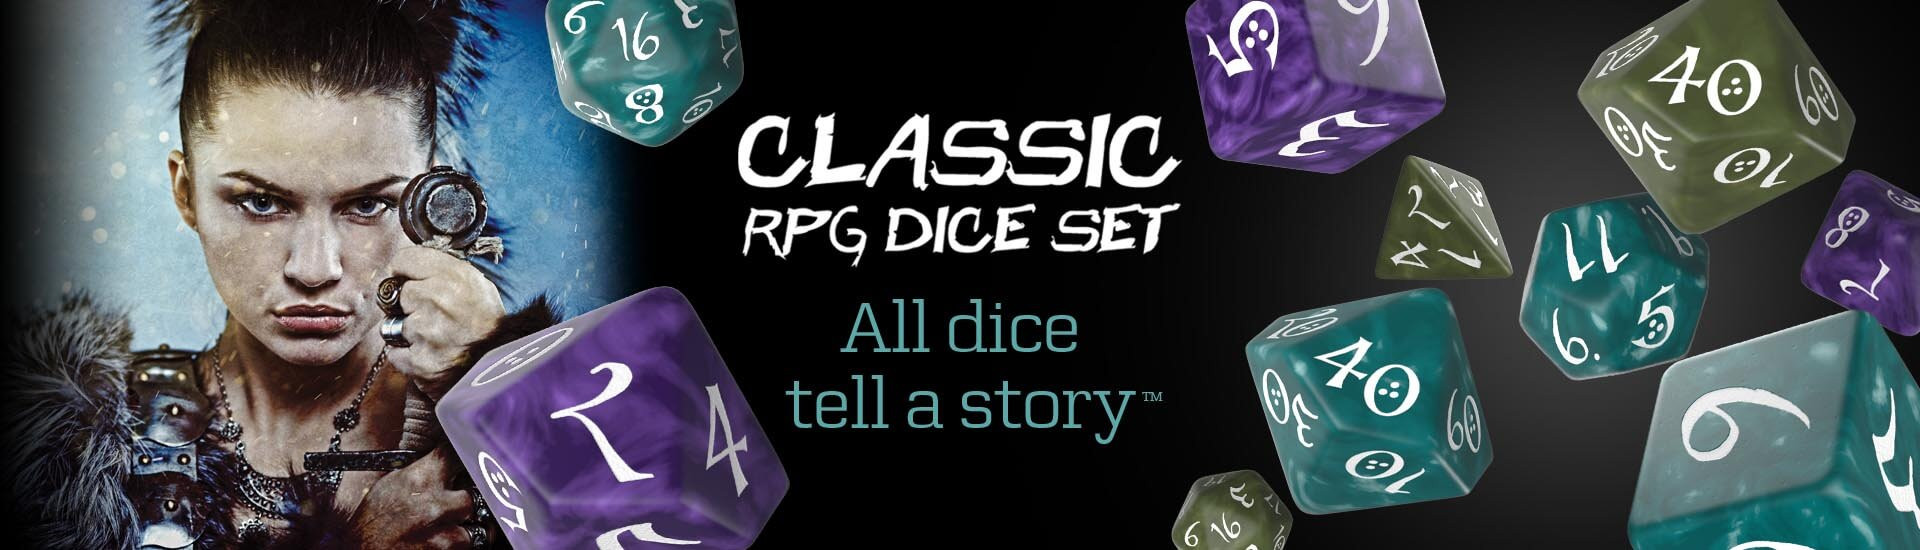 New Classic Dice Sets